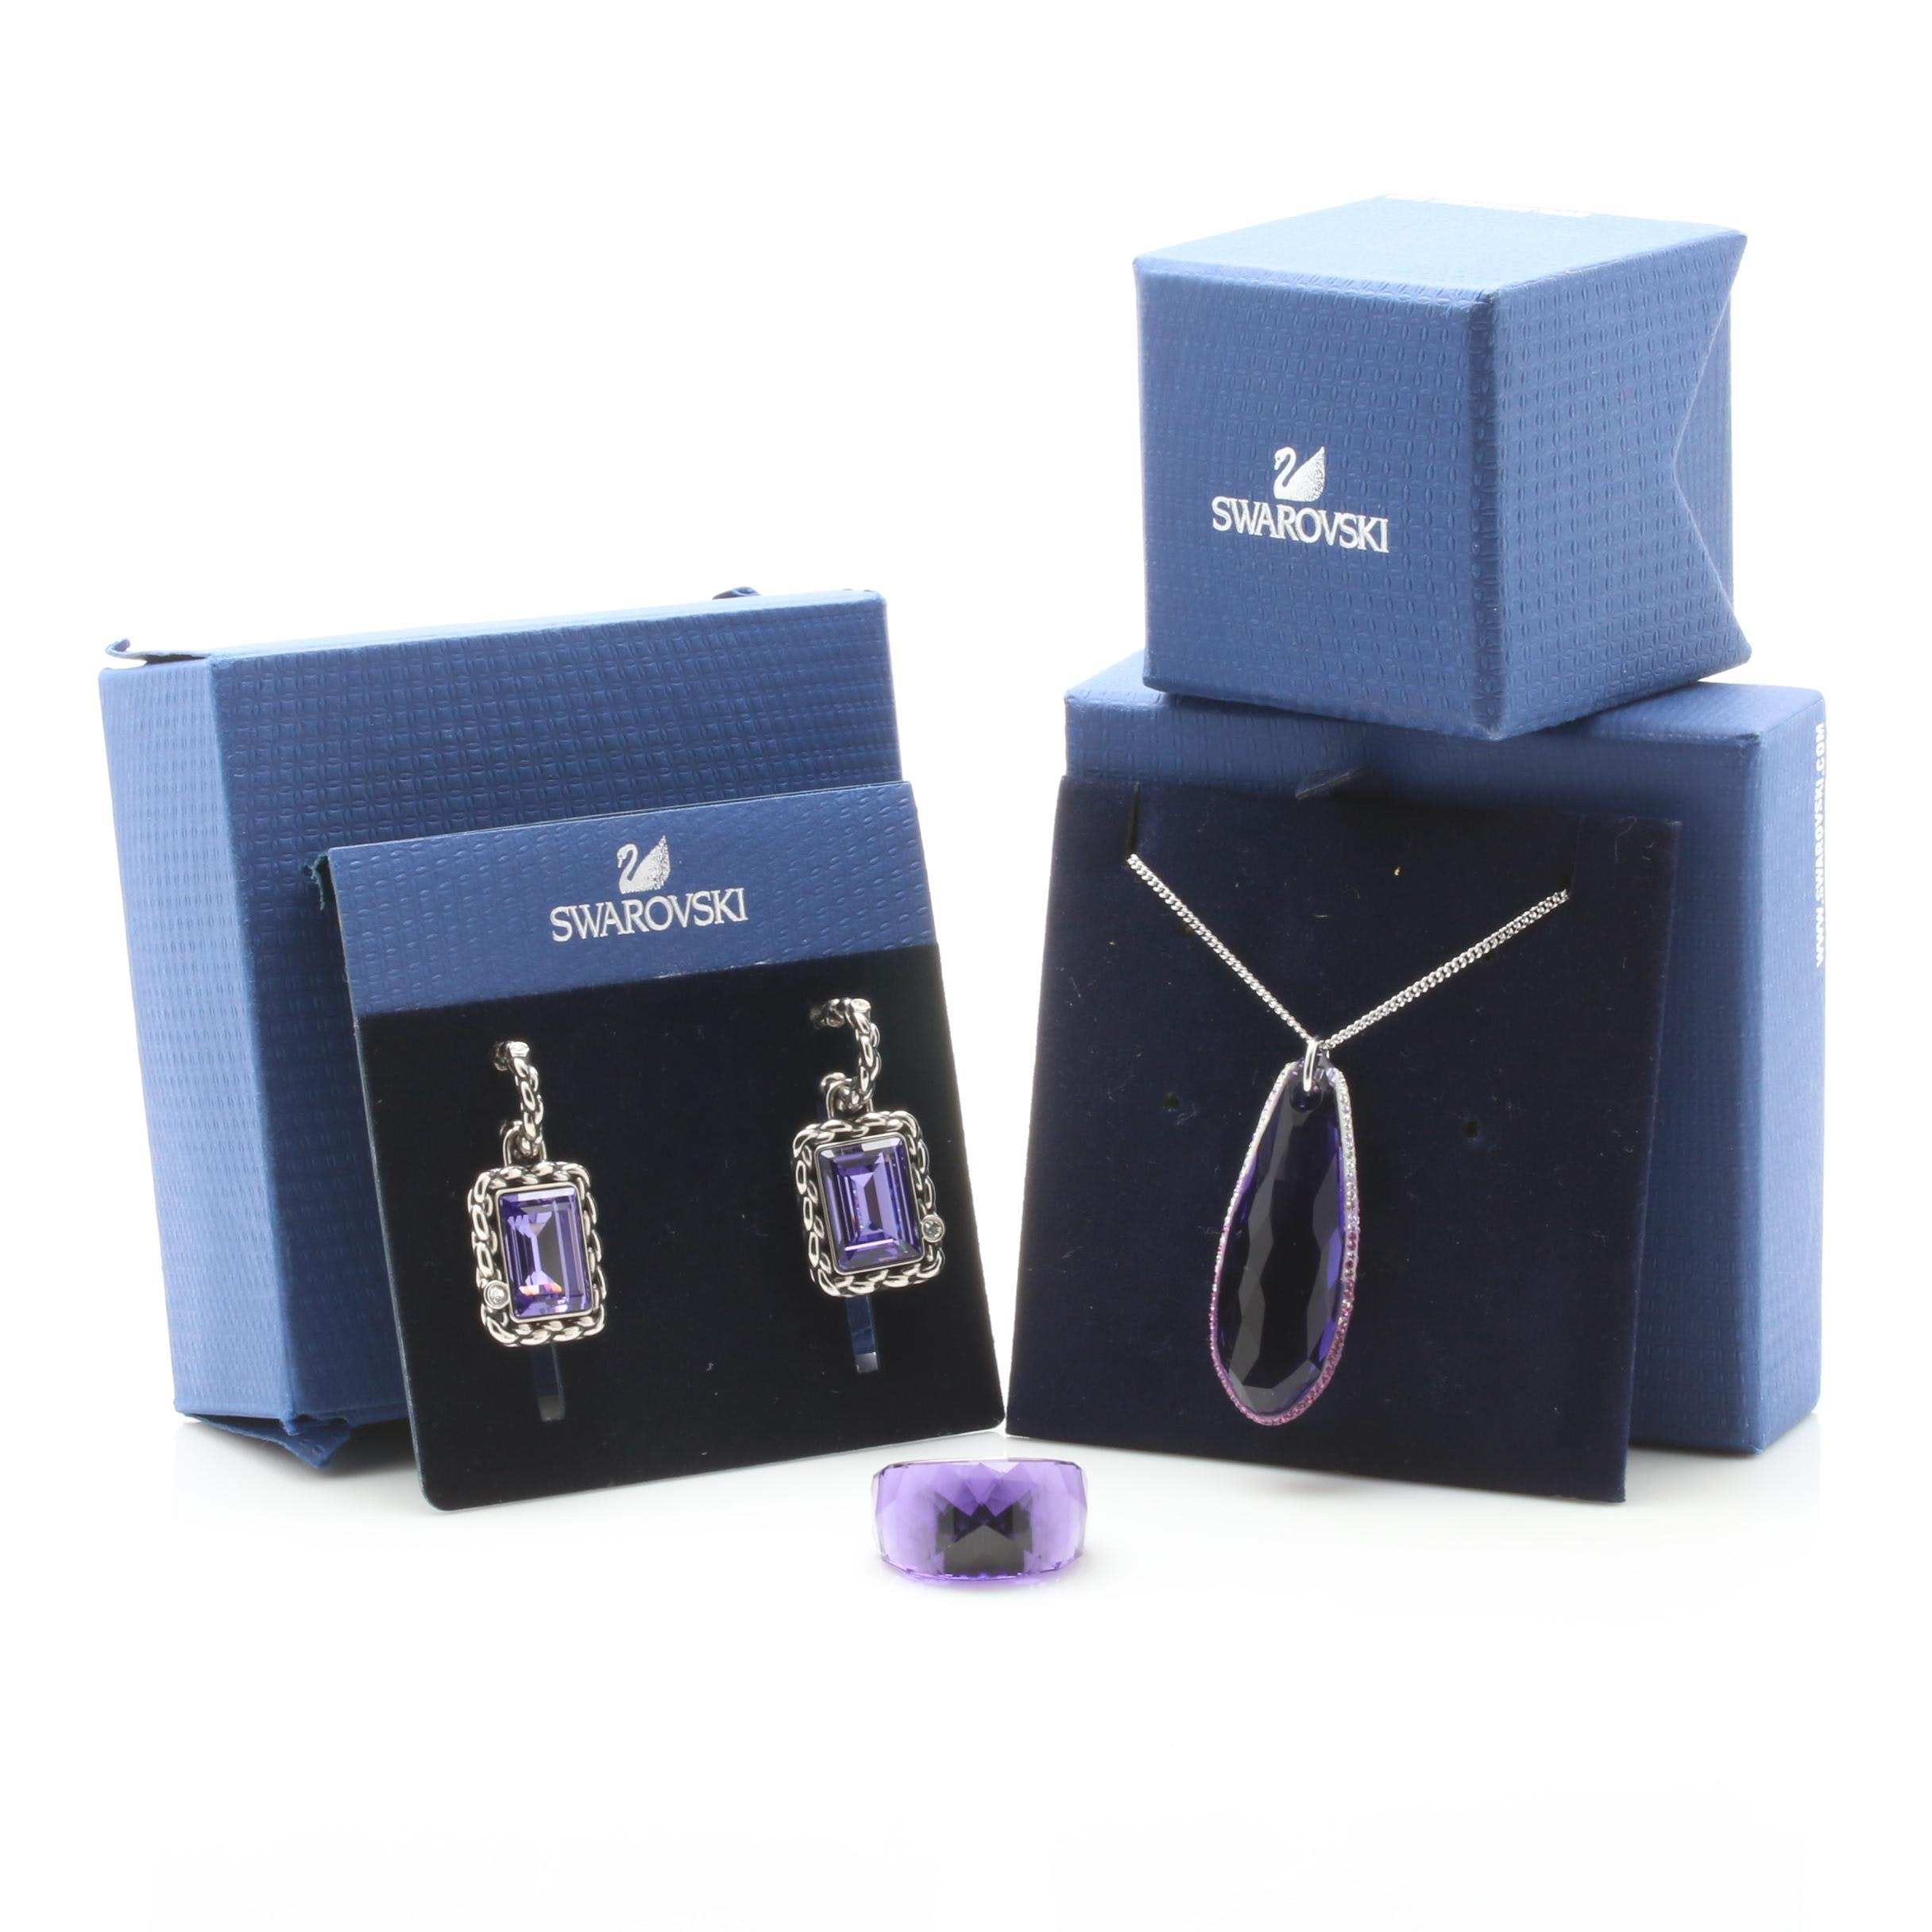 Swarovski Purple Crystal Ring, Earring, and Necklace Selection